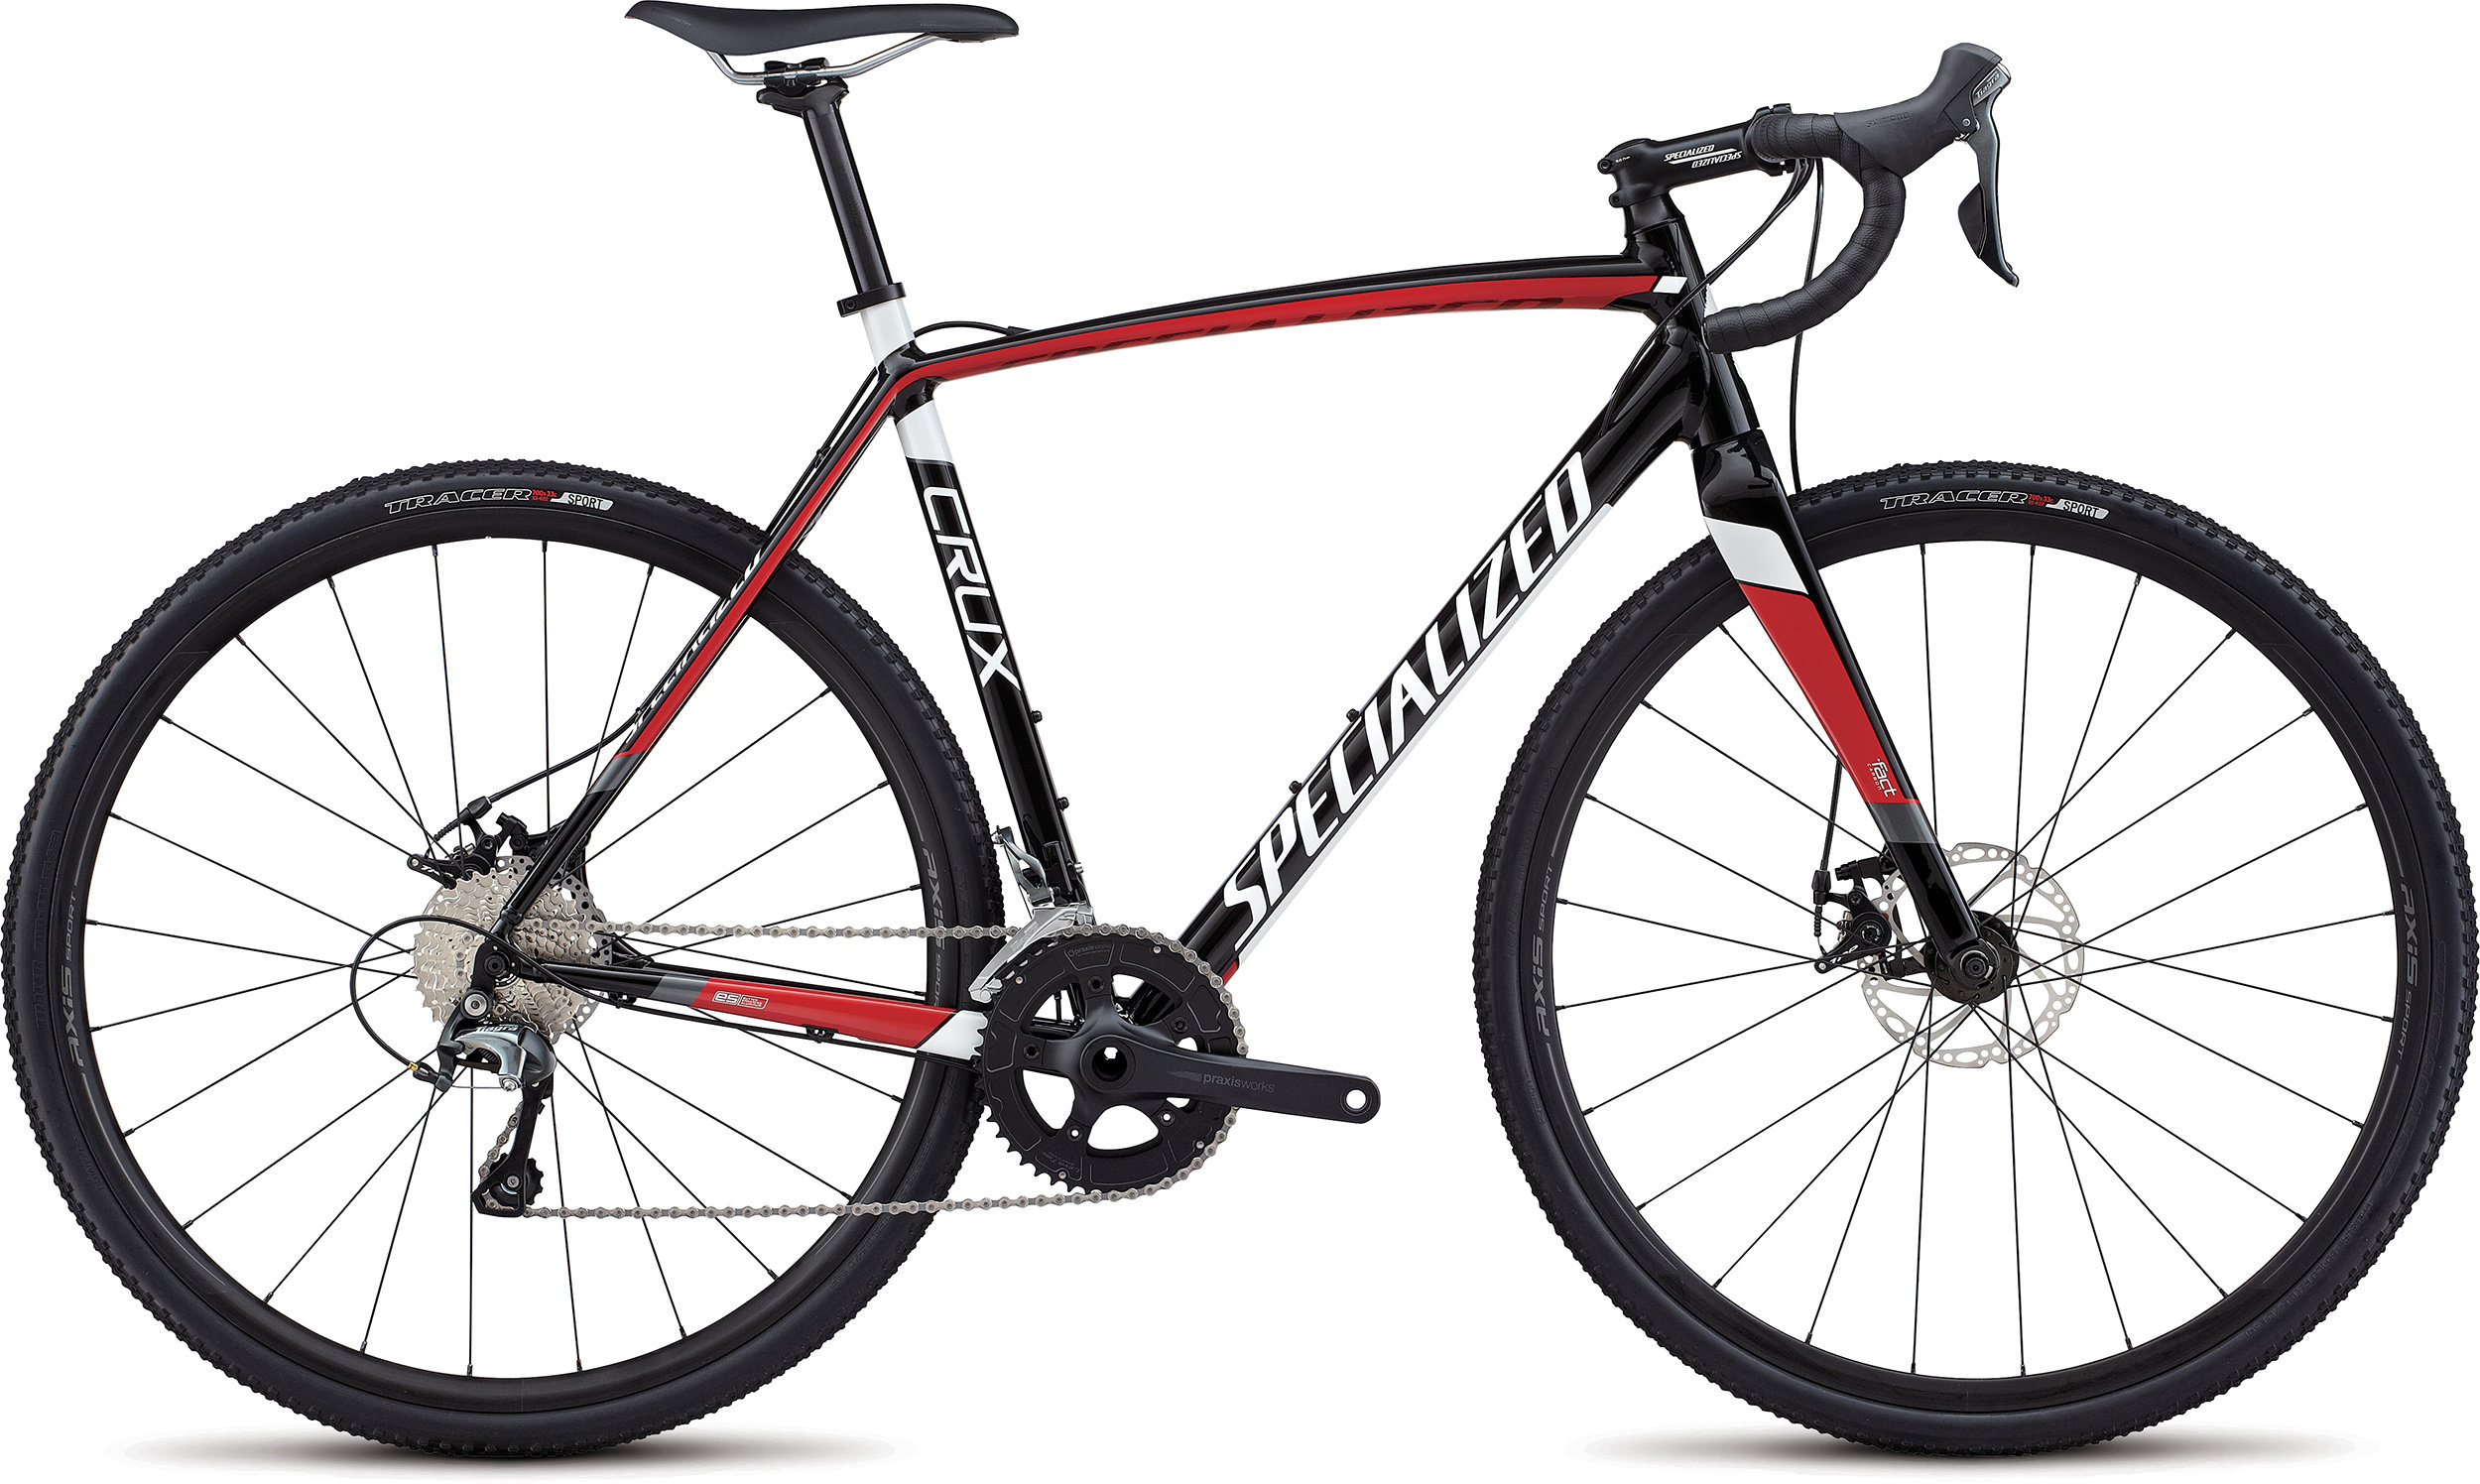 SPECIALIZED CRUX E5 TARBLK/FLORED/METWHT 52 - SPECIALIZED CRUX E5 TARBLK/FLORED/METWHT 52